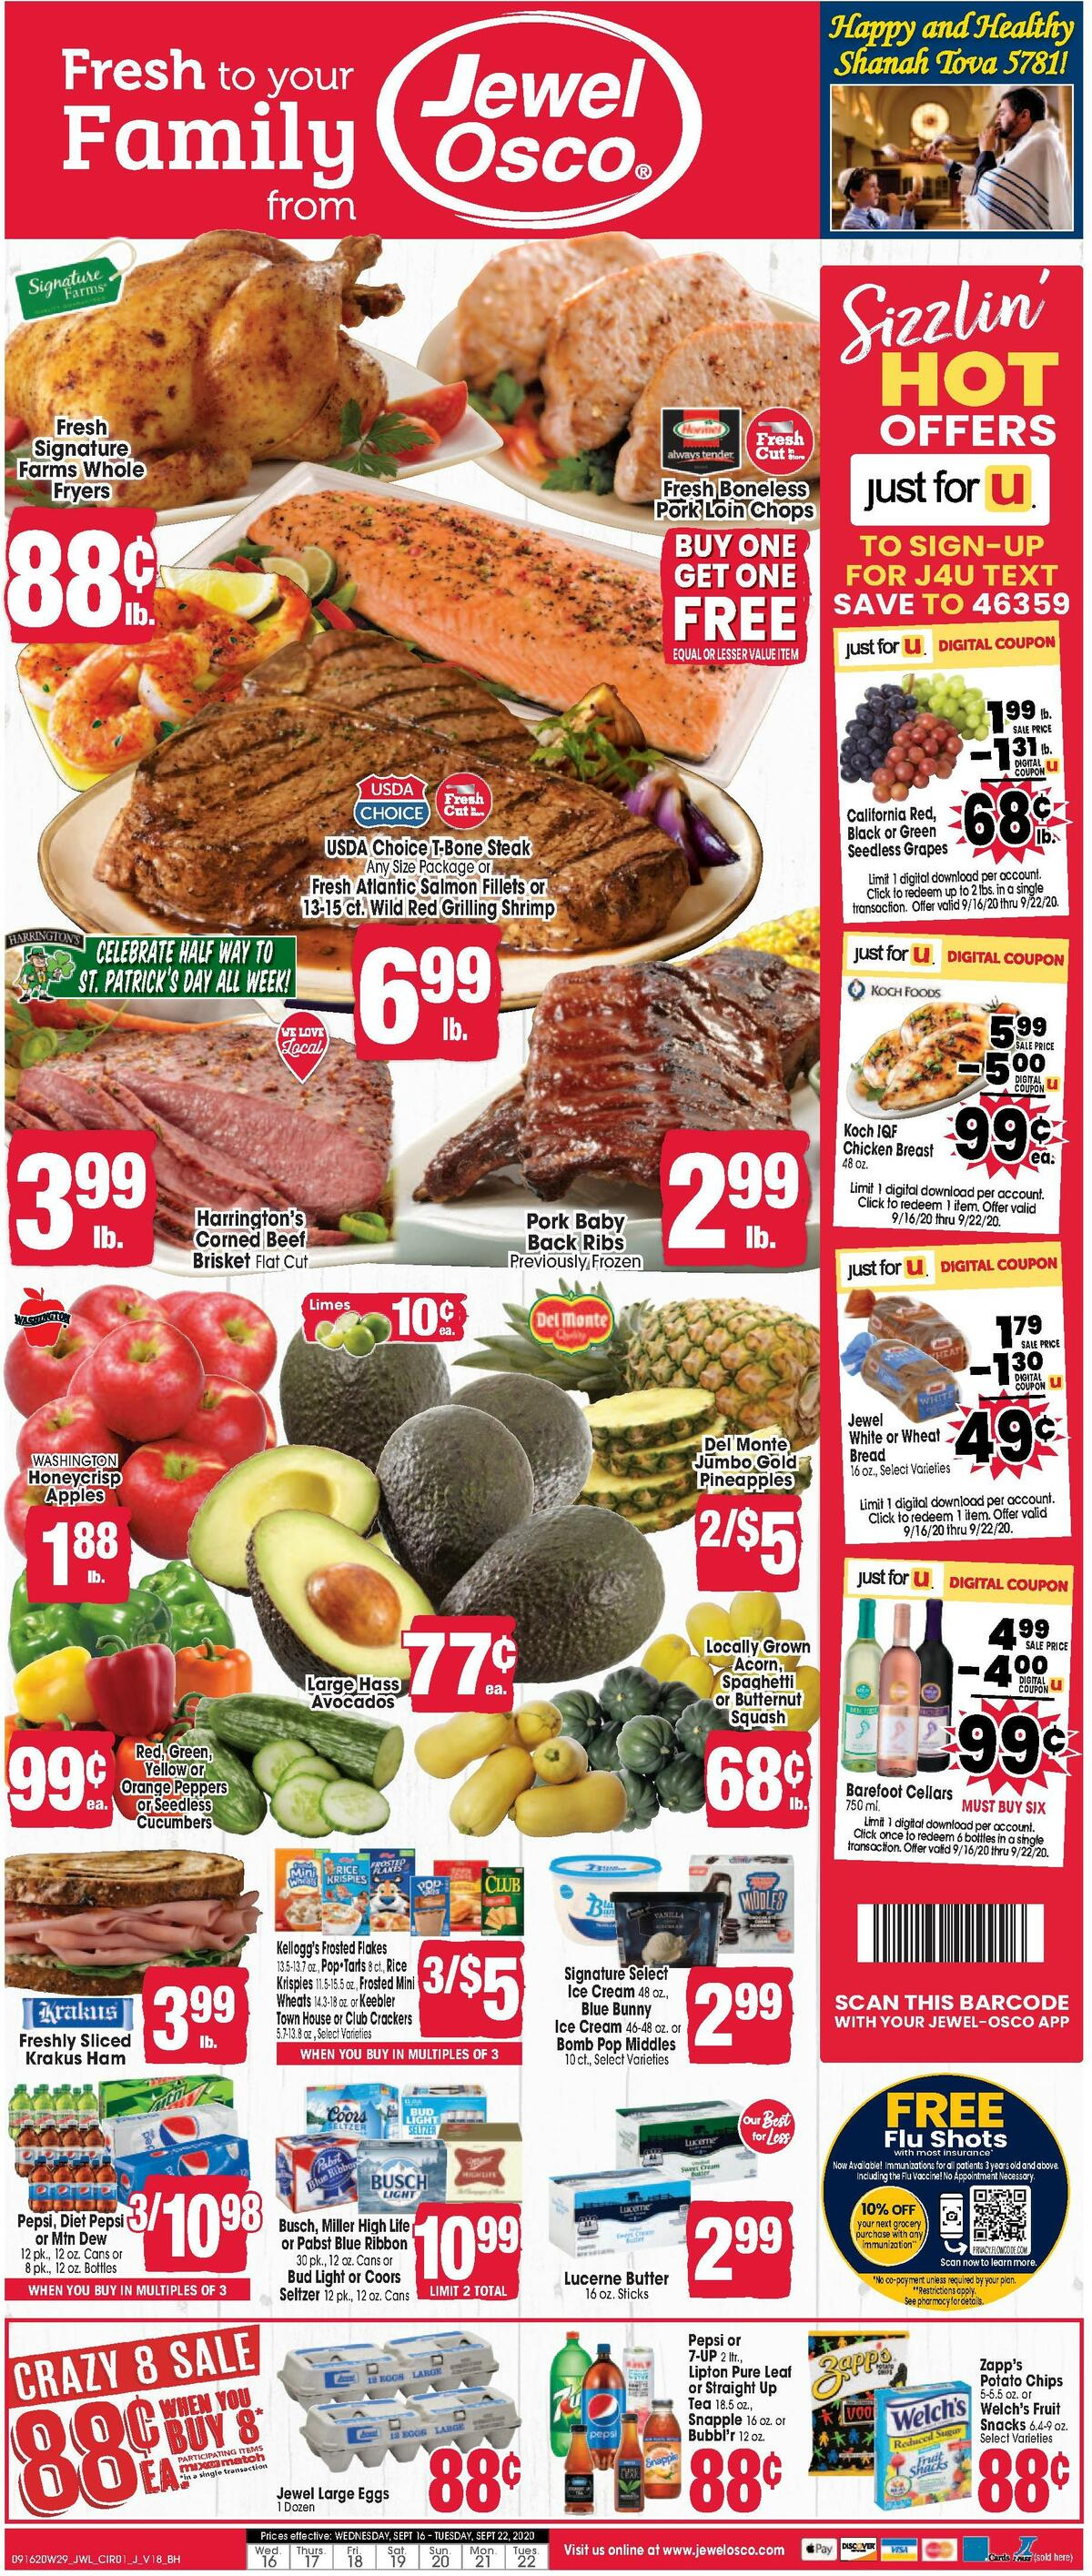 Jewel Osco Weekly Ad from September 16